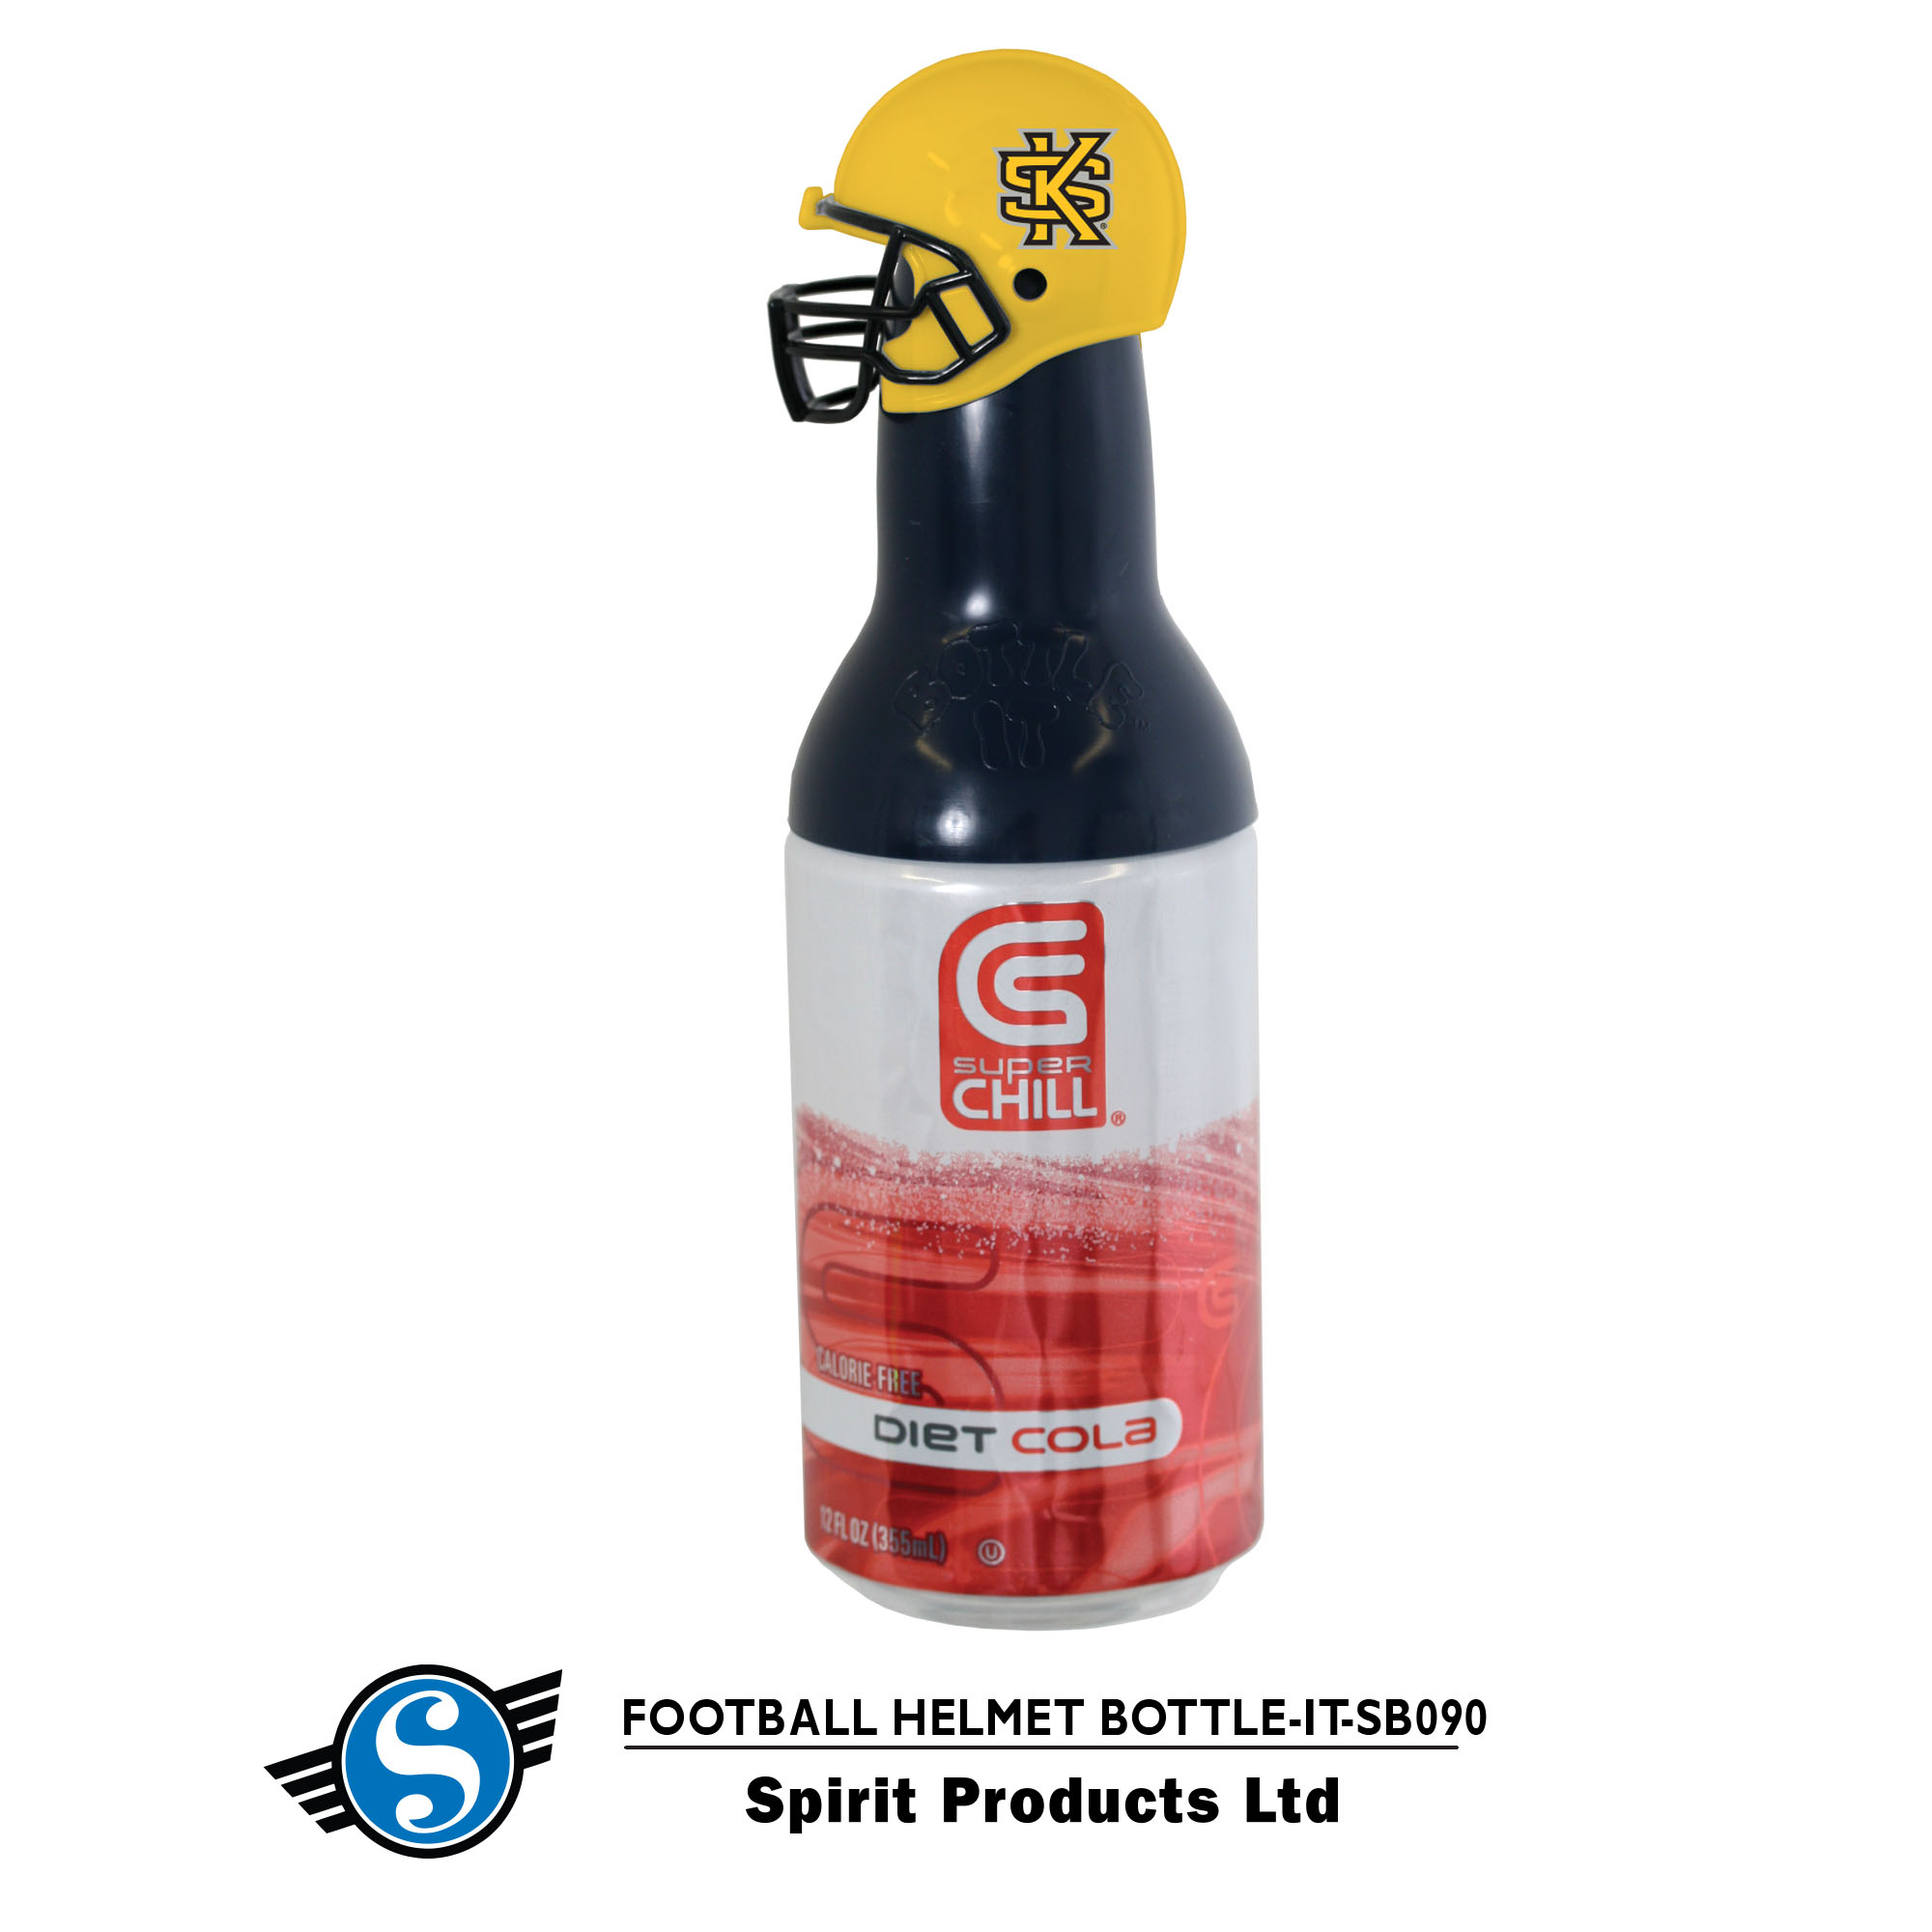 Image For Bottle-It Football Helmet